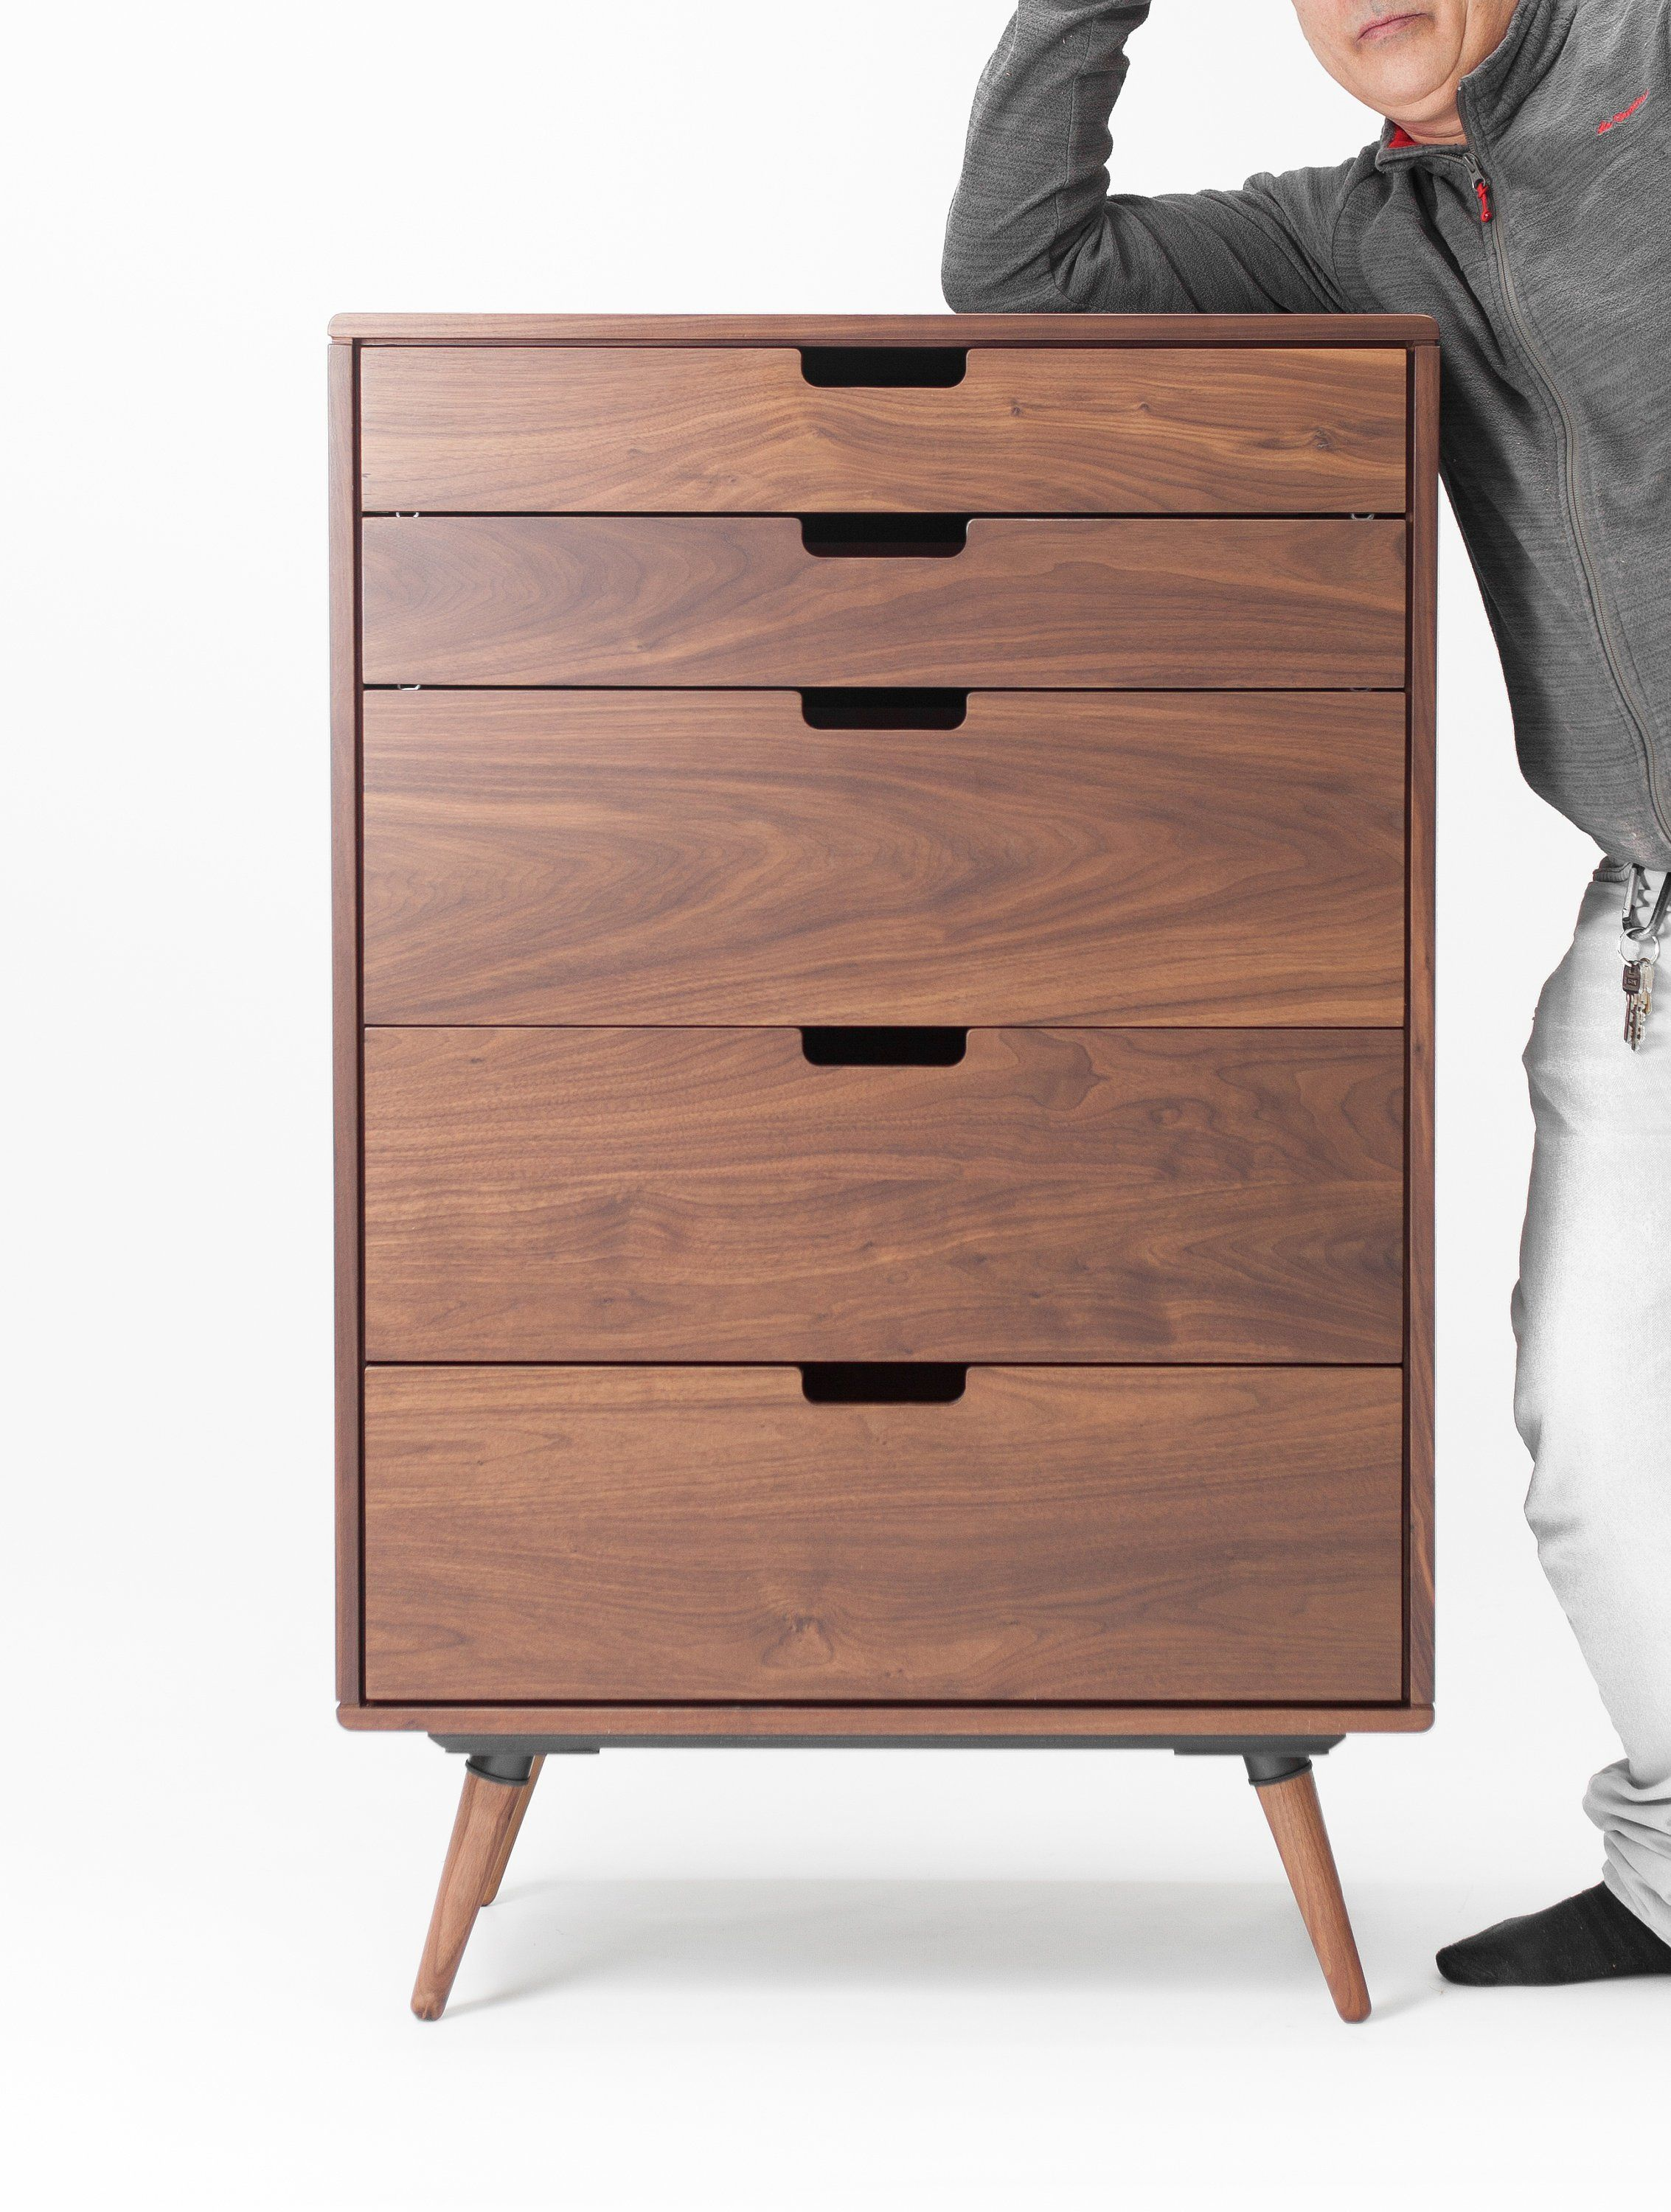 Chest Of Drawers Tall Boy In Walnut By Manuel Barrera For Habitables Walnut Furniture Dresser Decor Mid Century Modern Dresser